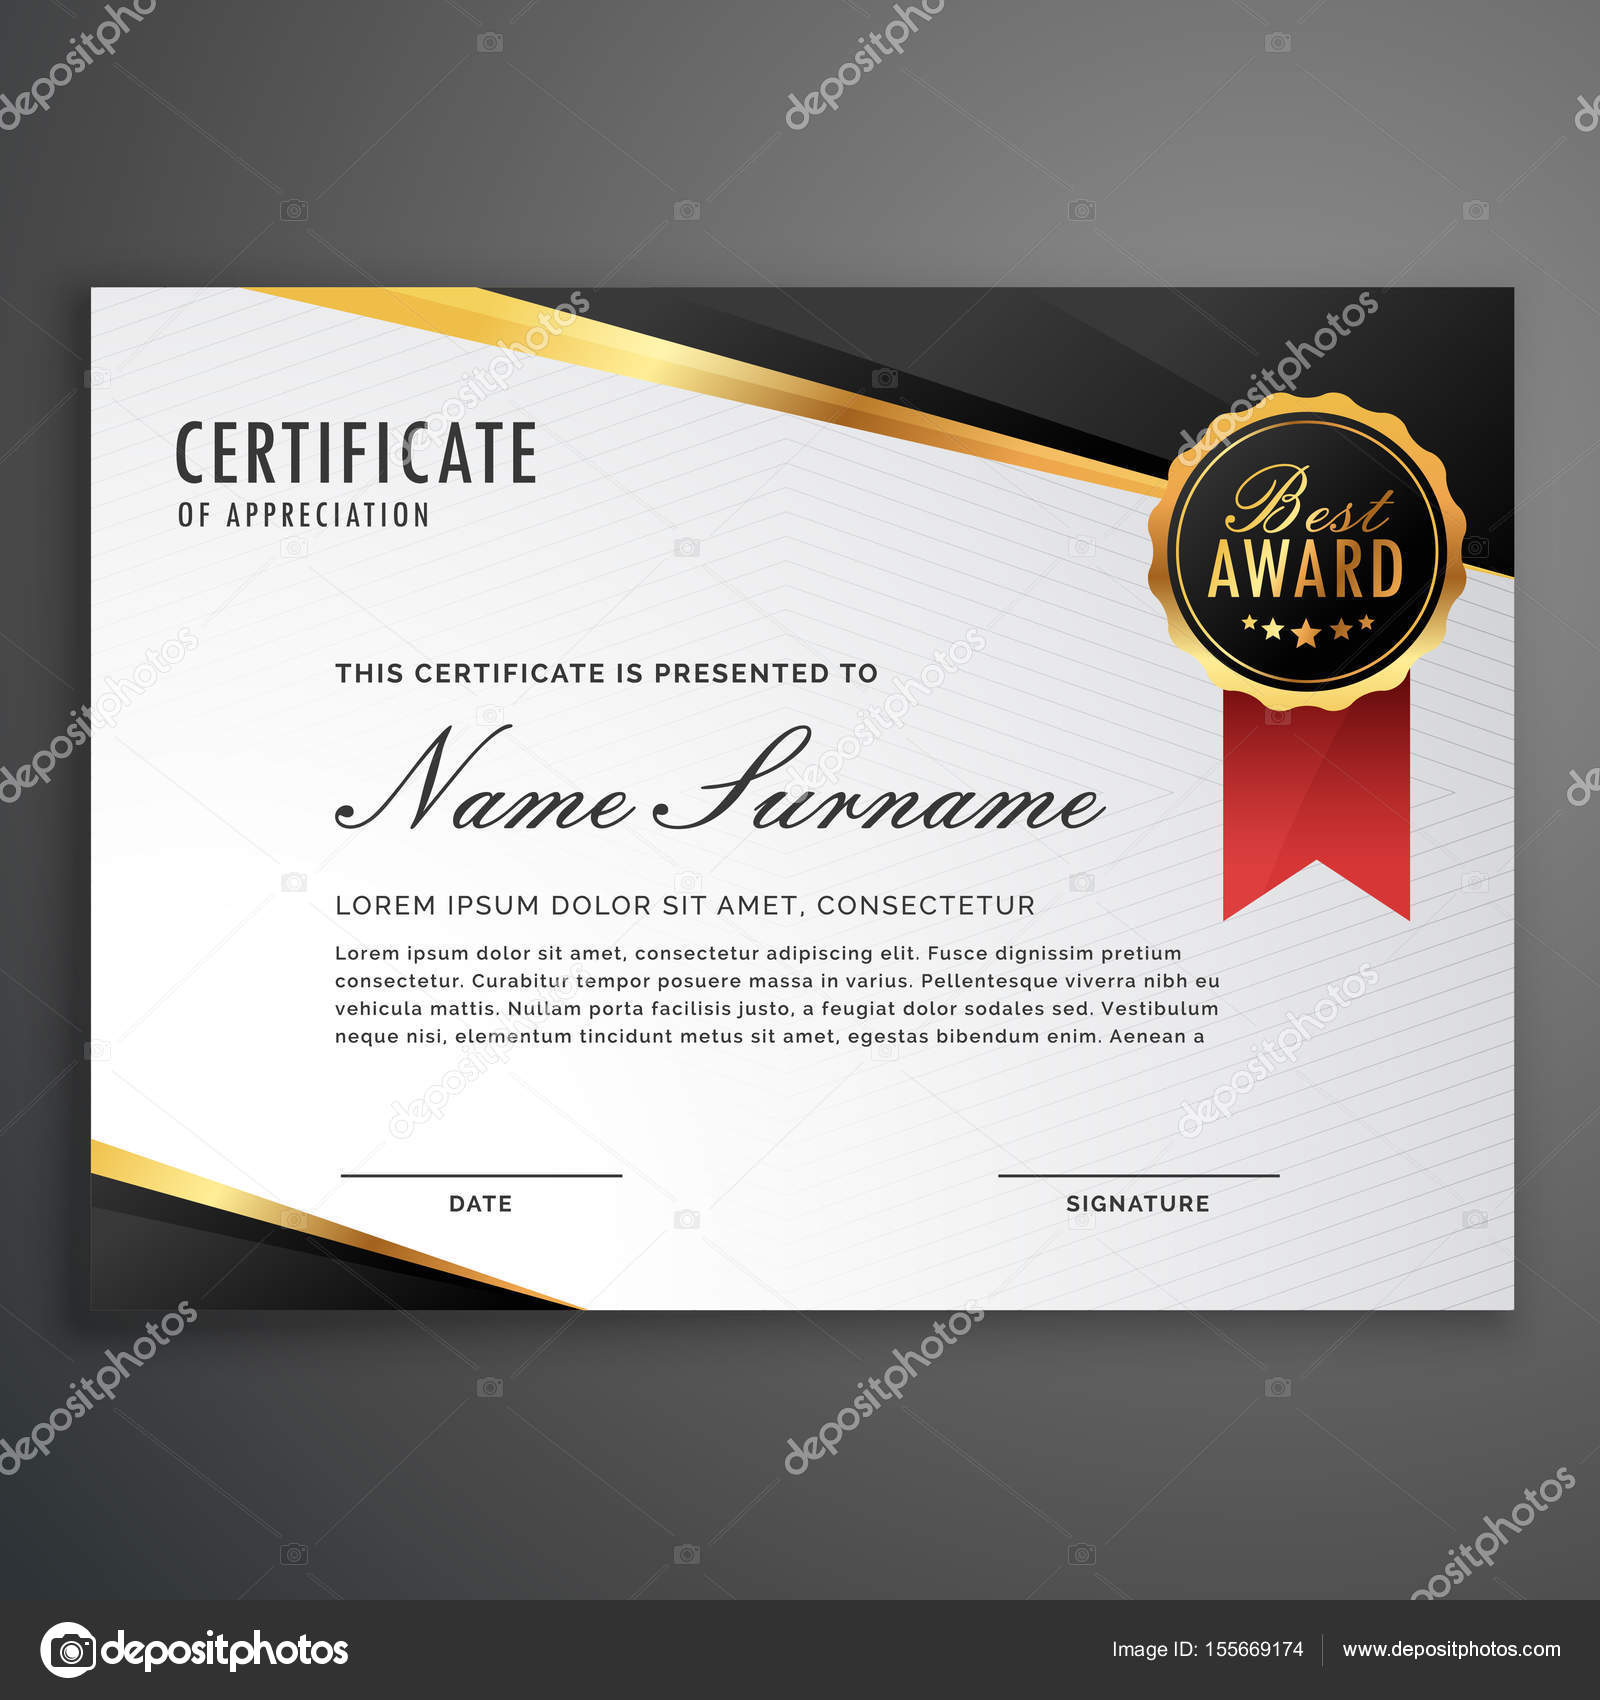 Luxurious certificate design vector template stock vector luxurious certificate design vector template stock vector yadclub Choice Image